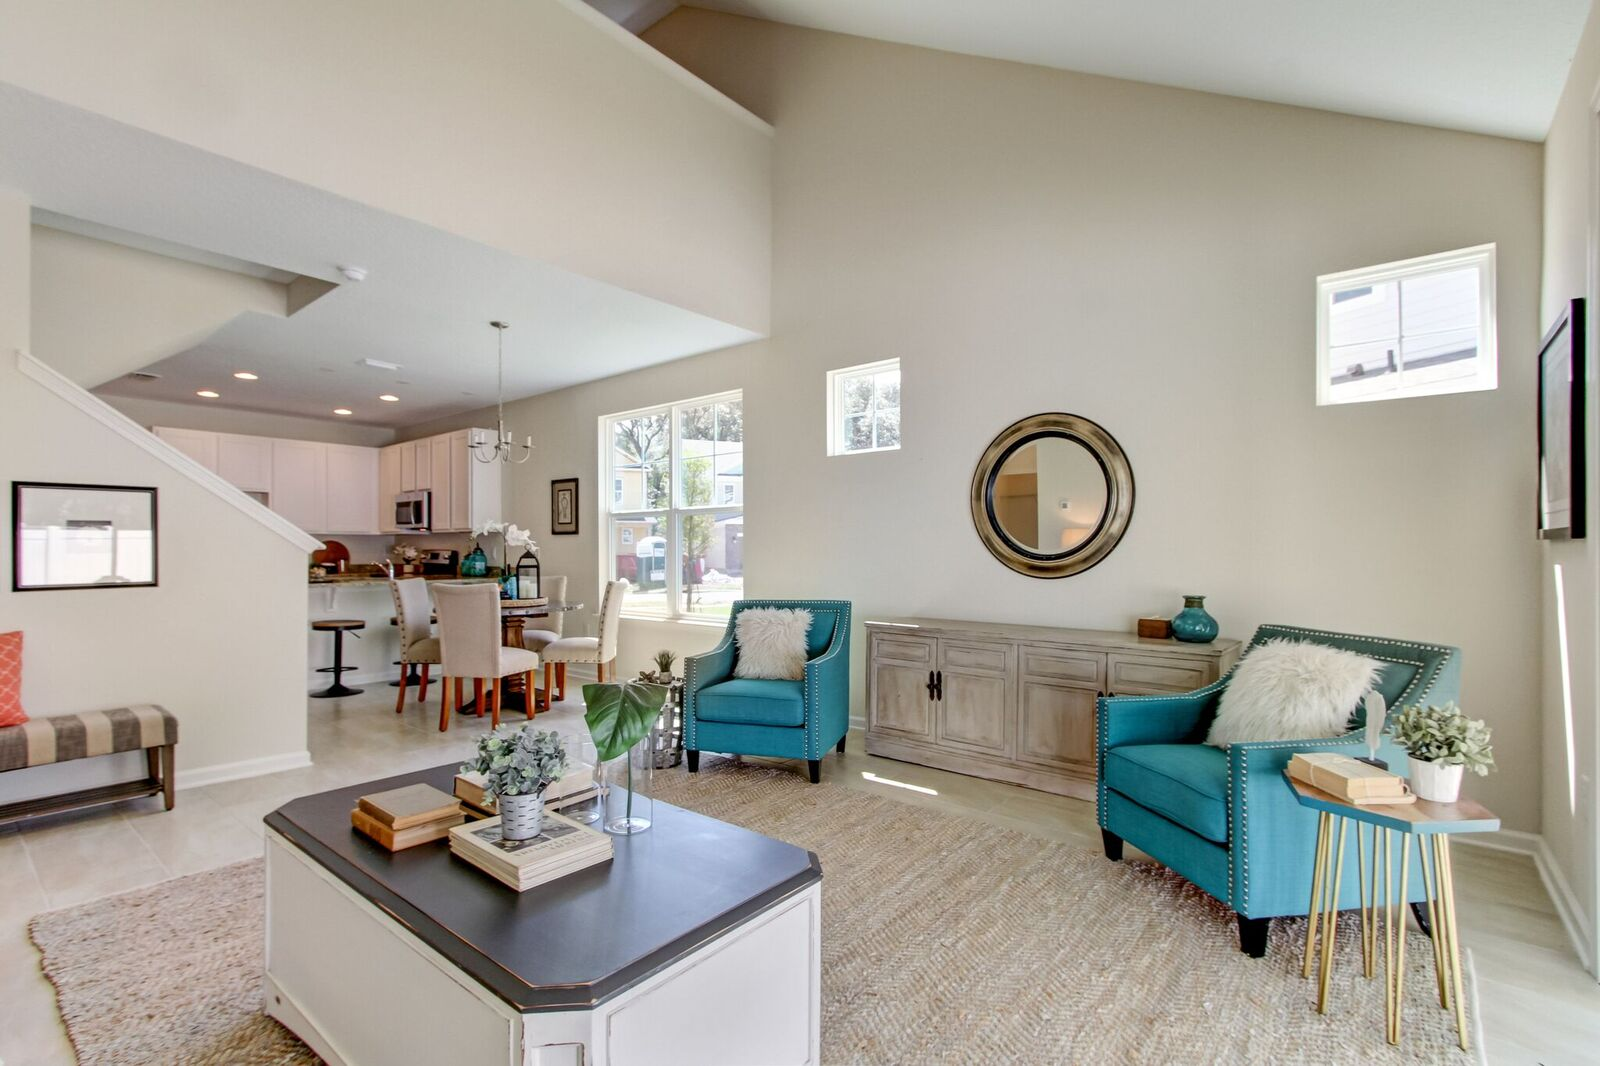 7 Reasons Getting Rid of Clutter Helps a…